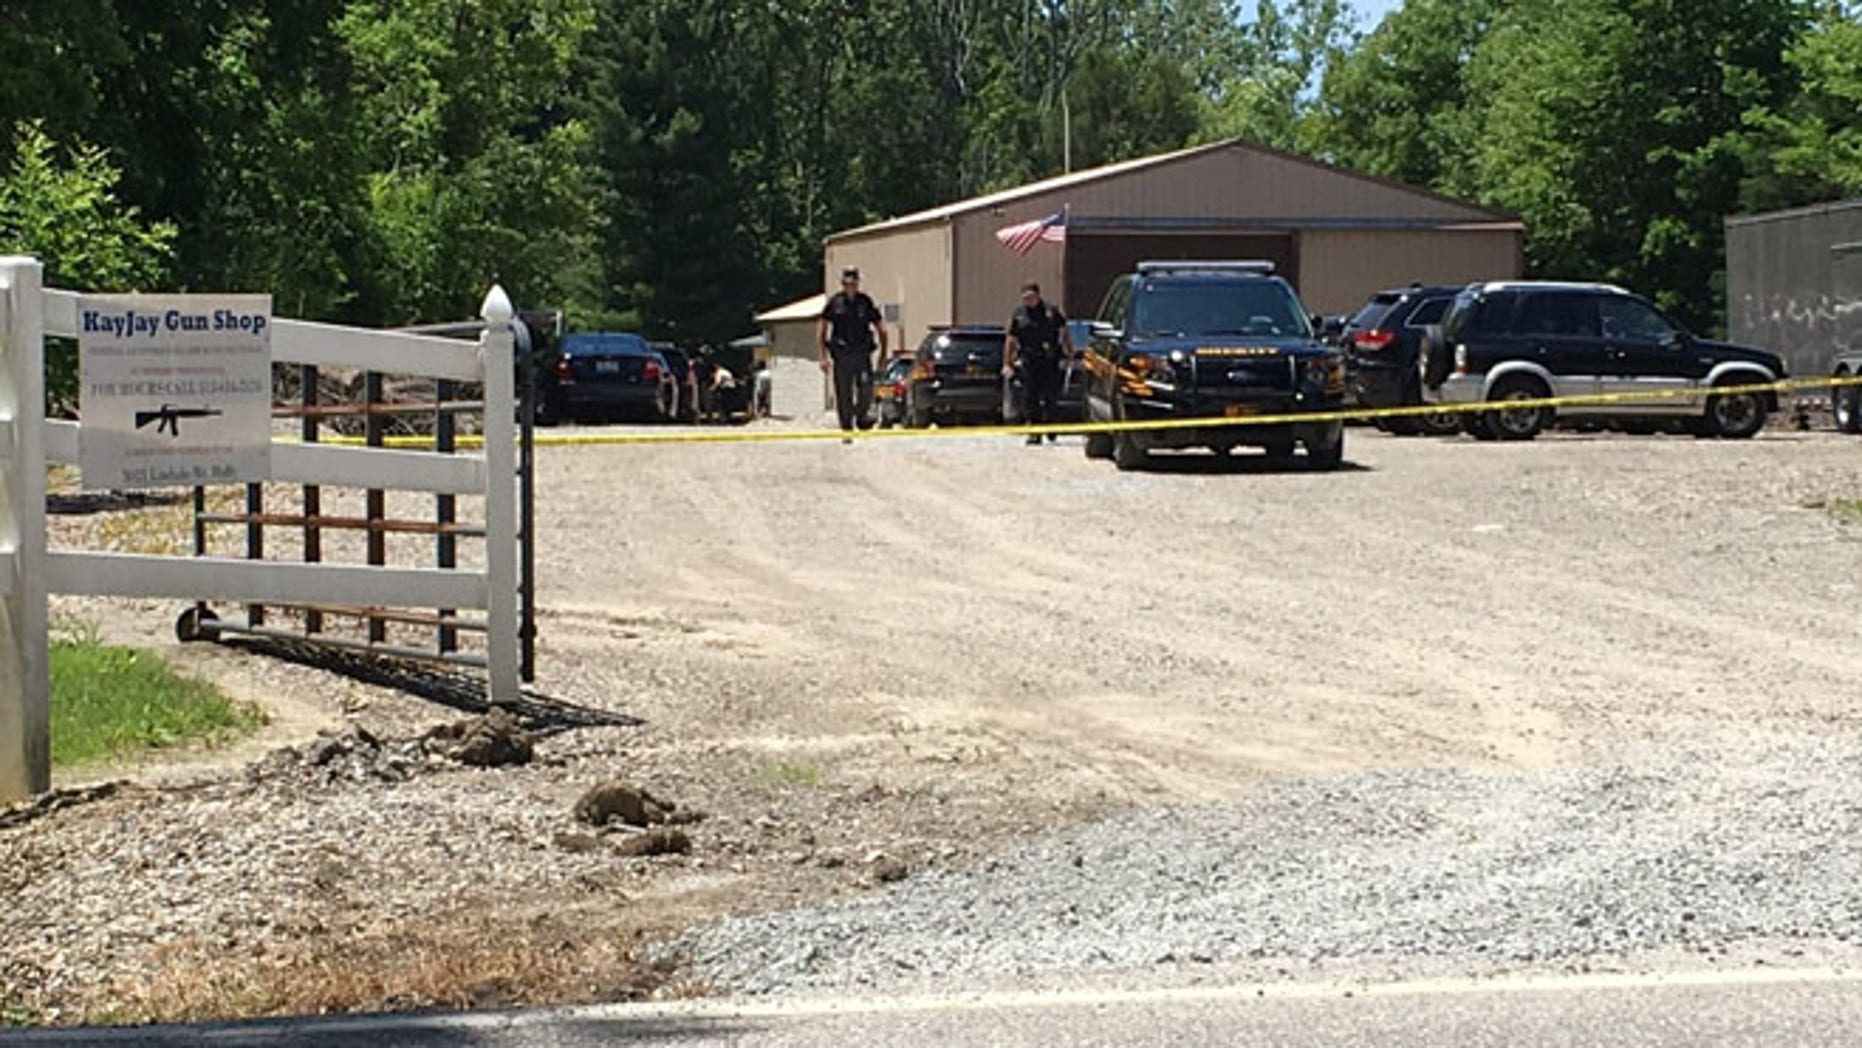 Sheriff's deputies investigate accidental shooting at KayJay Gun Shop in Amelia, Ohio. (FOX19 NOW/ Chris Waldmann)